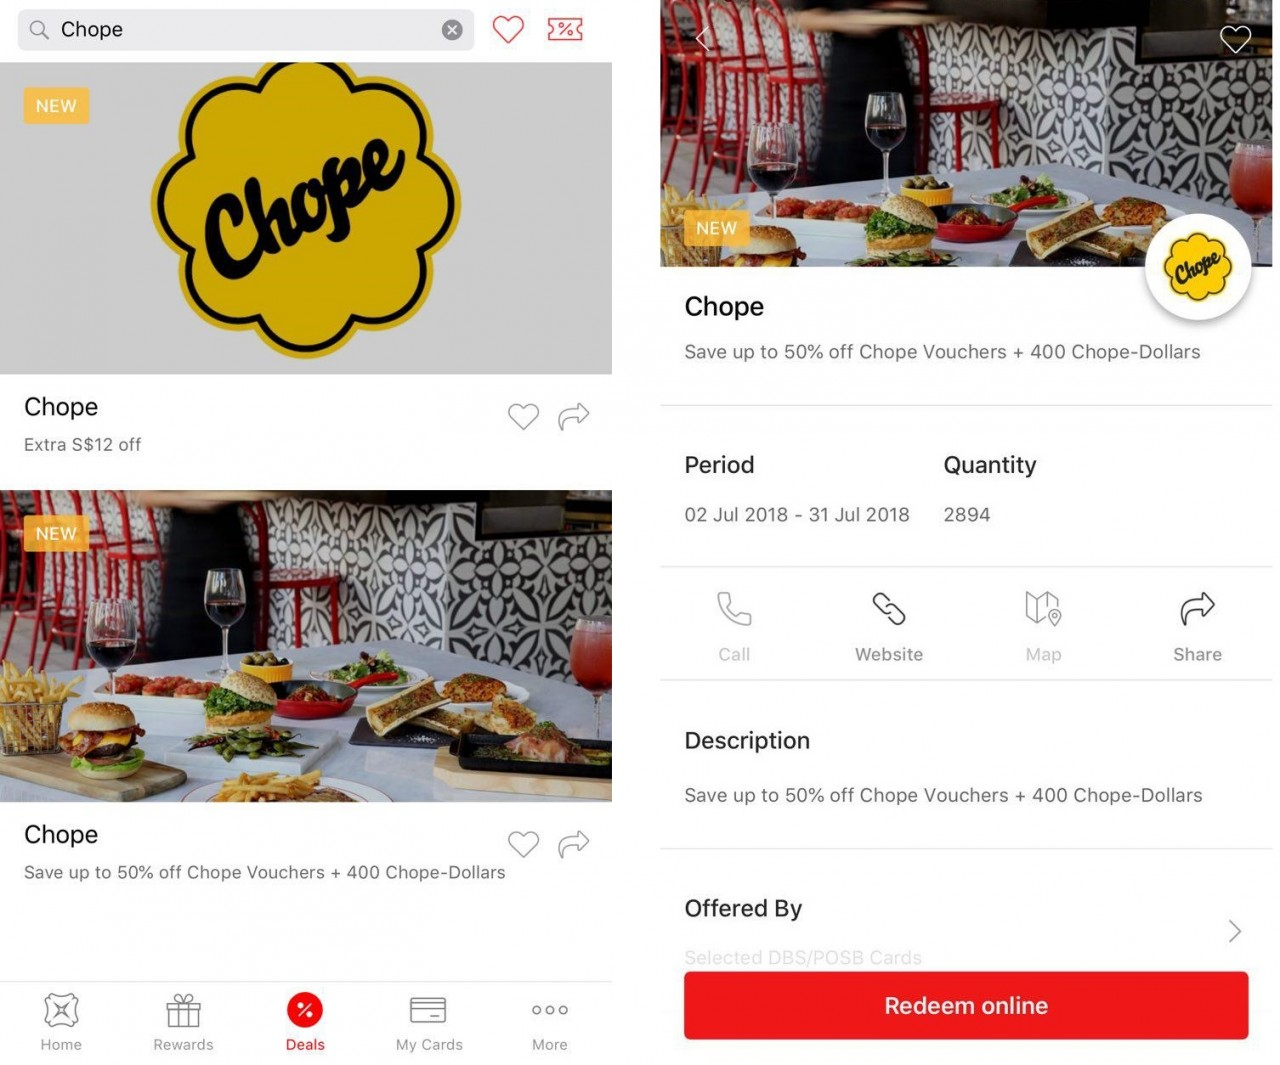 Chope discounts on the DBS Lifestyle app